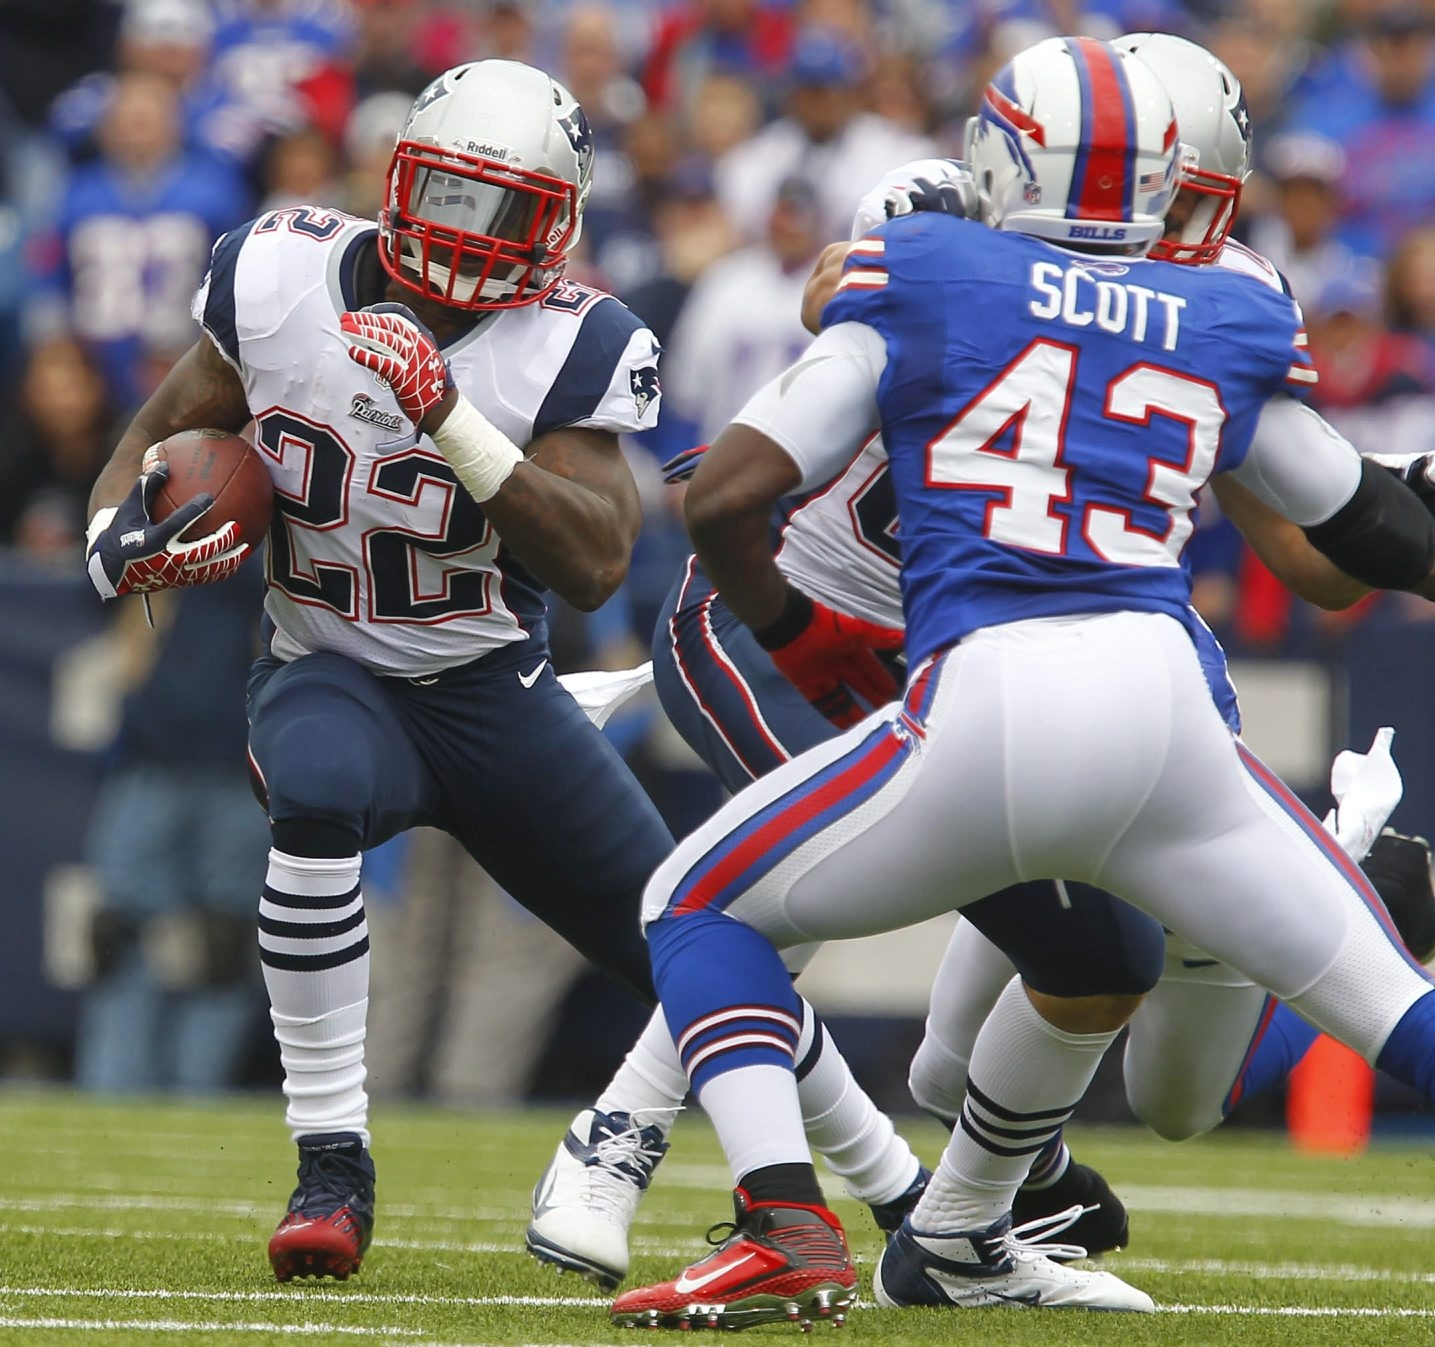 Stevan Ridley (above) and Brandon Bolden were hardly household names when they combined to run for 243 yards and three touchdowns in a Sept. 30, 2012 victory over the Bills. (Mark Mulville /Buffalo News)